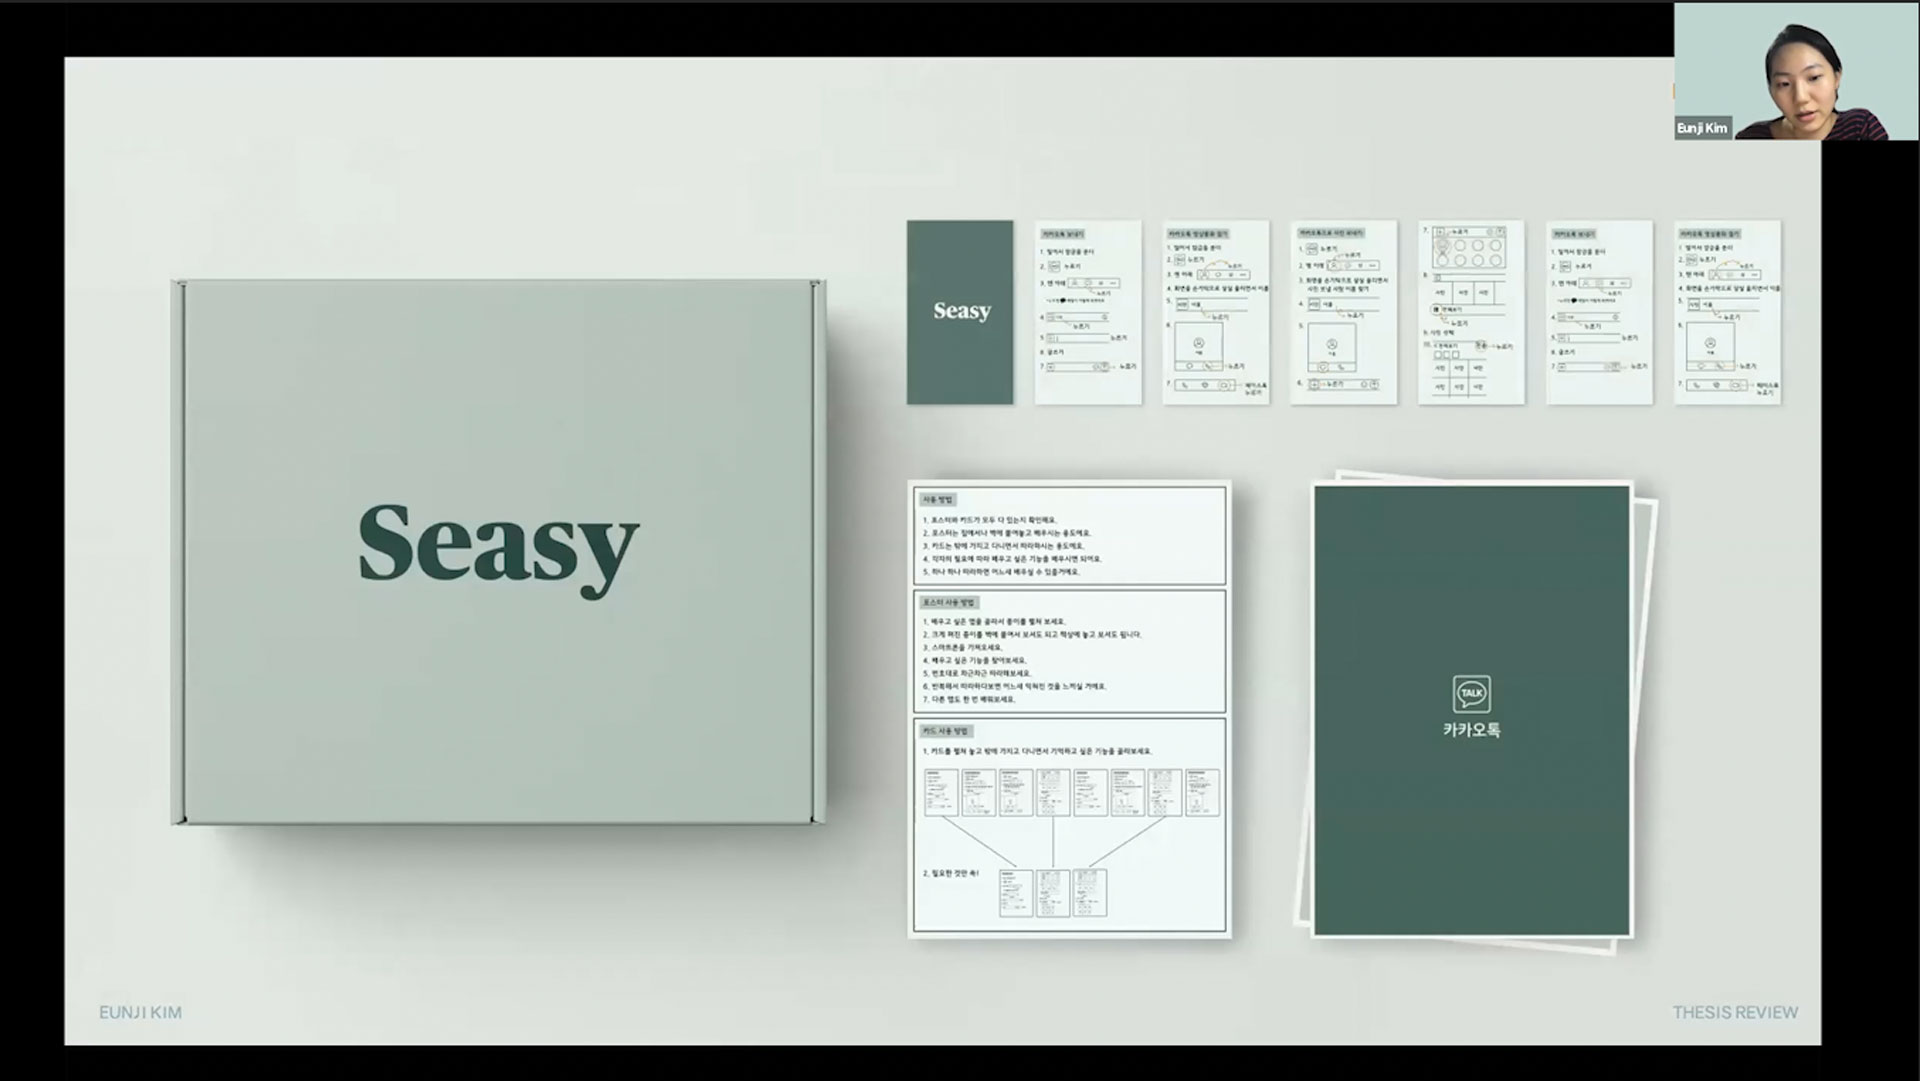 seasy box with instructions for using smartphone